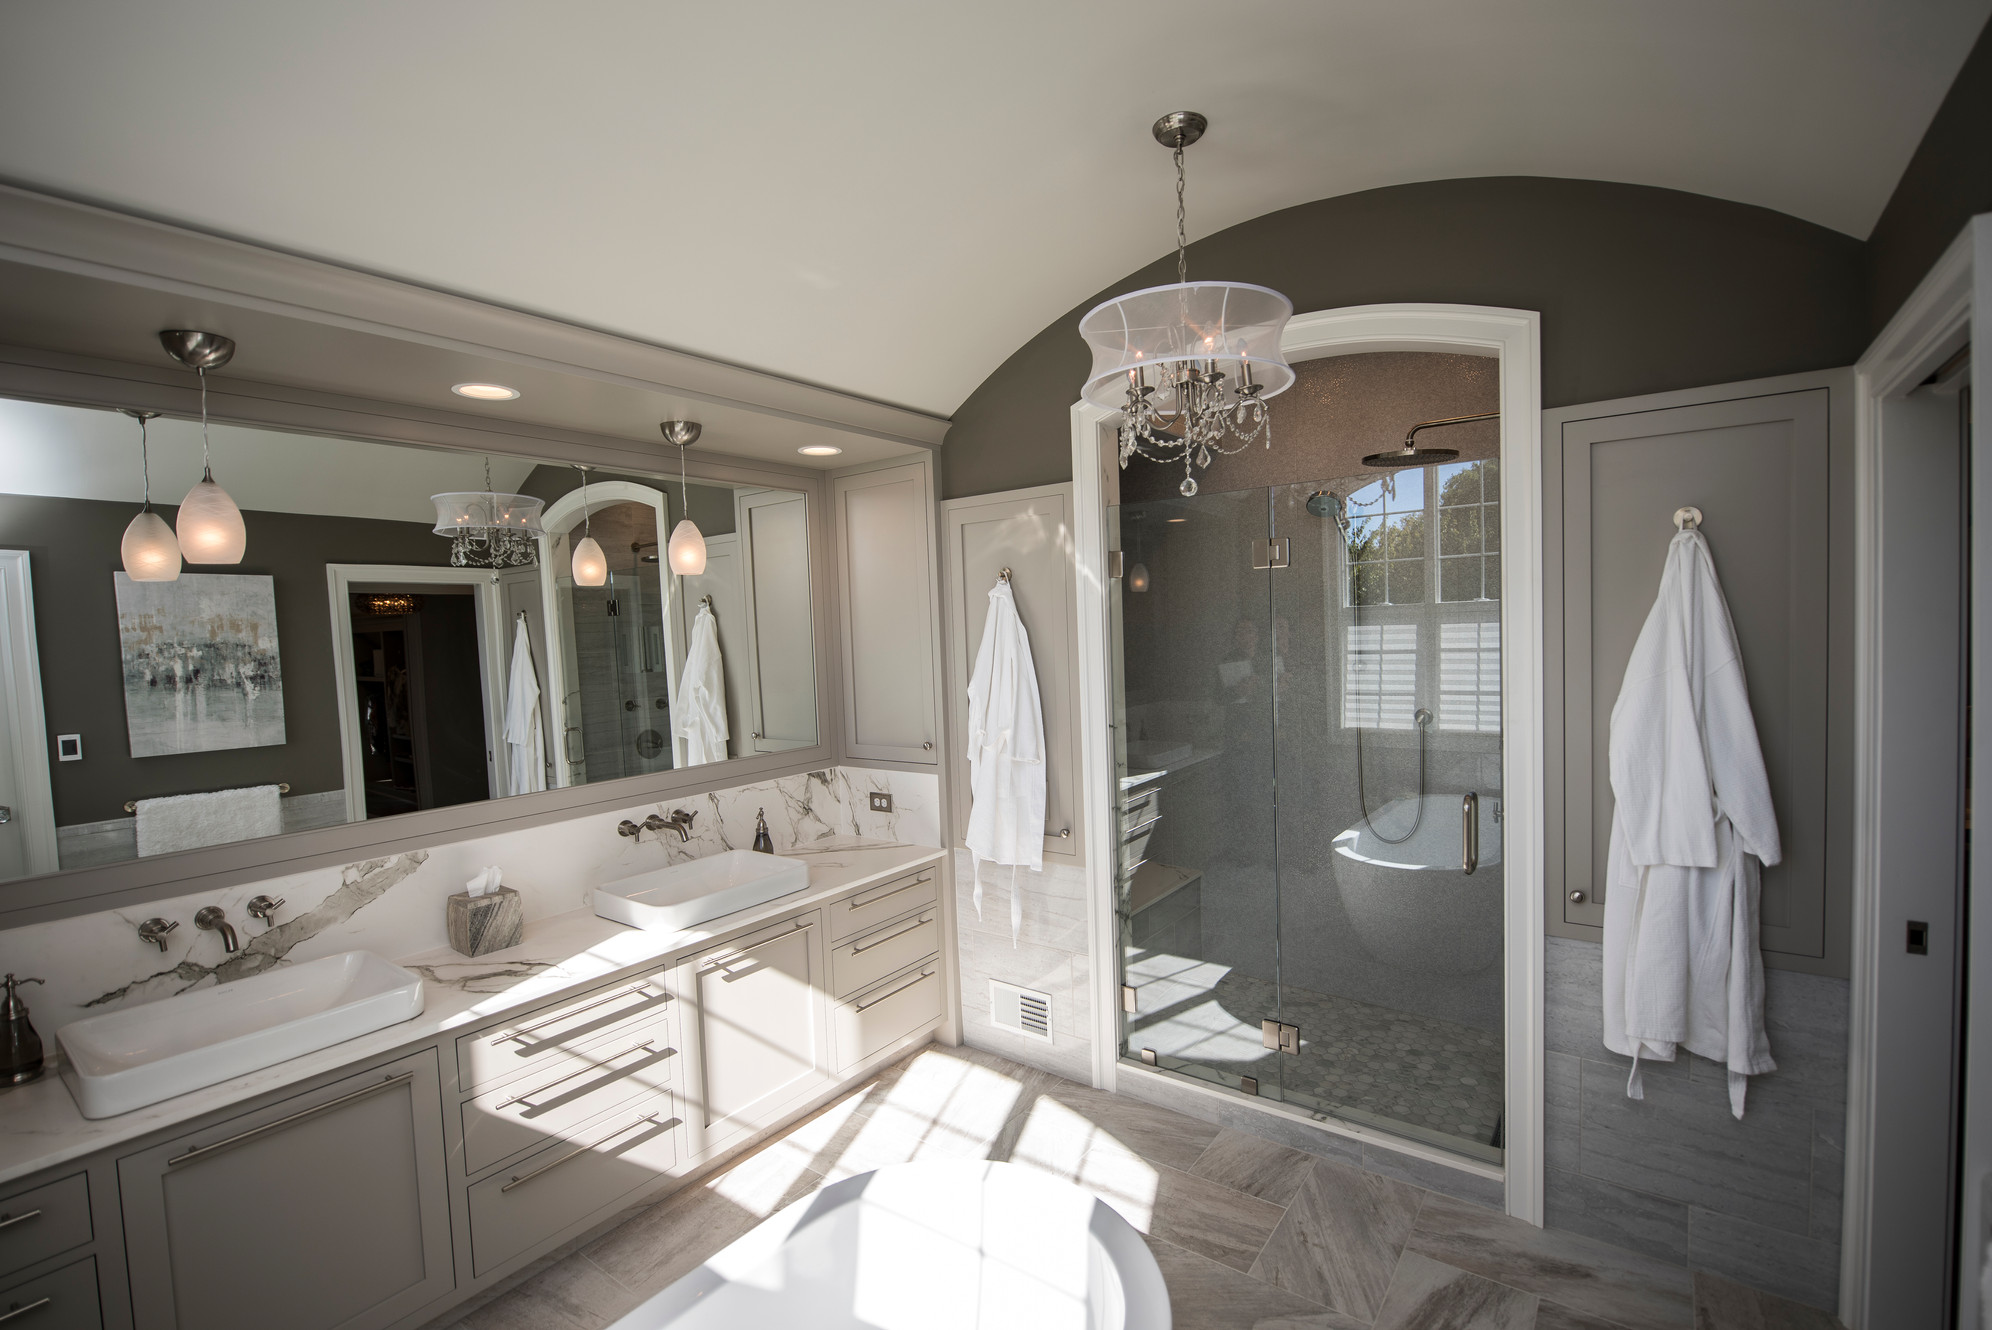 Greystone Custom Cabinetry Commercial Projects